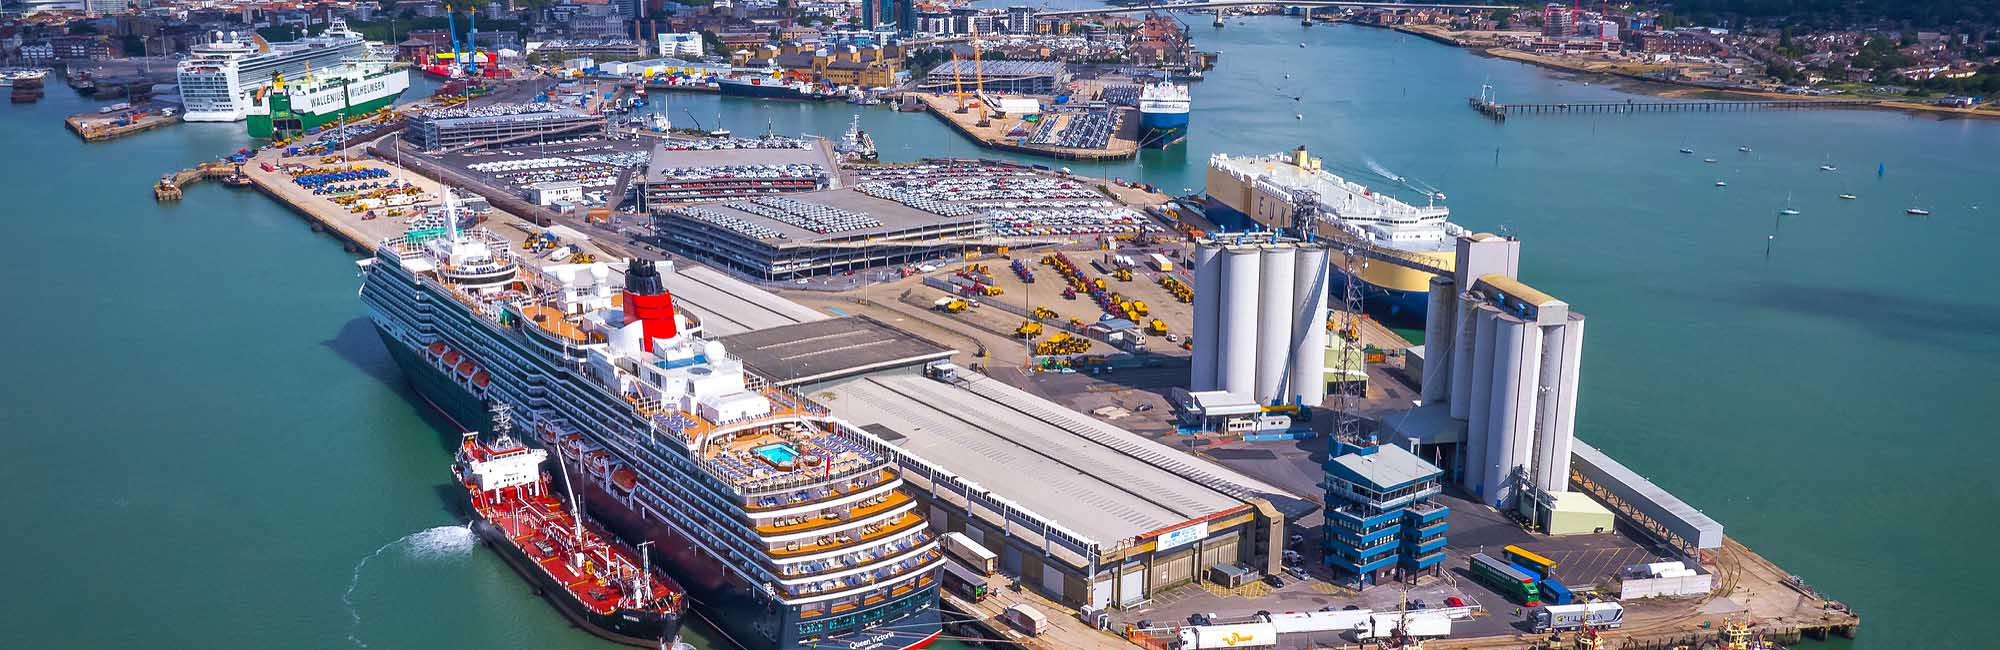 UK port transfer taxi services